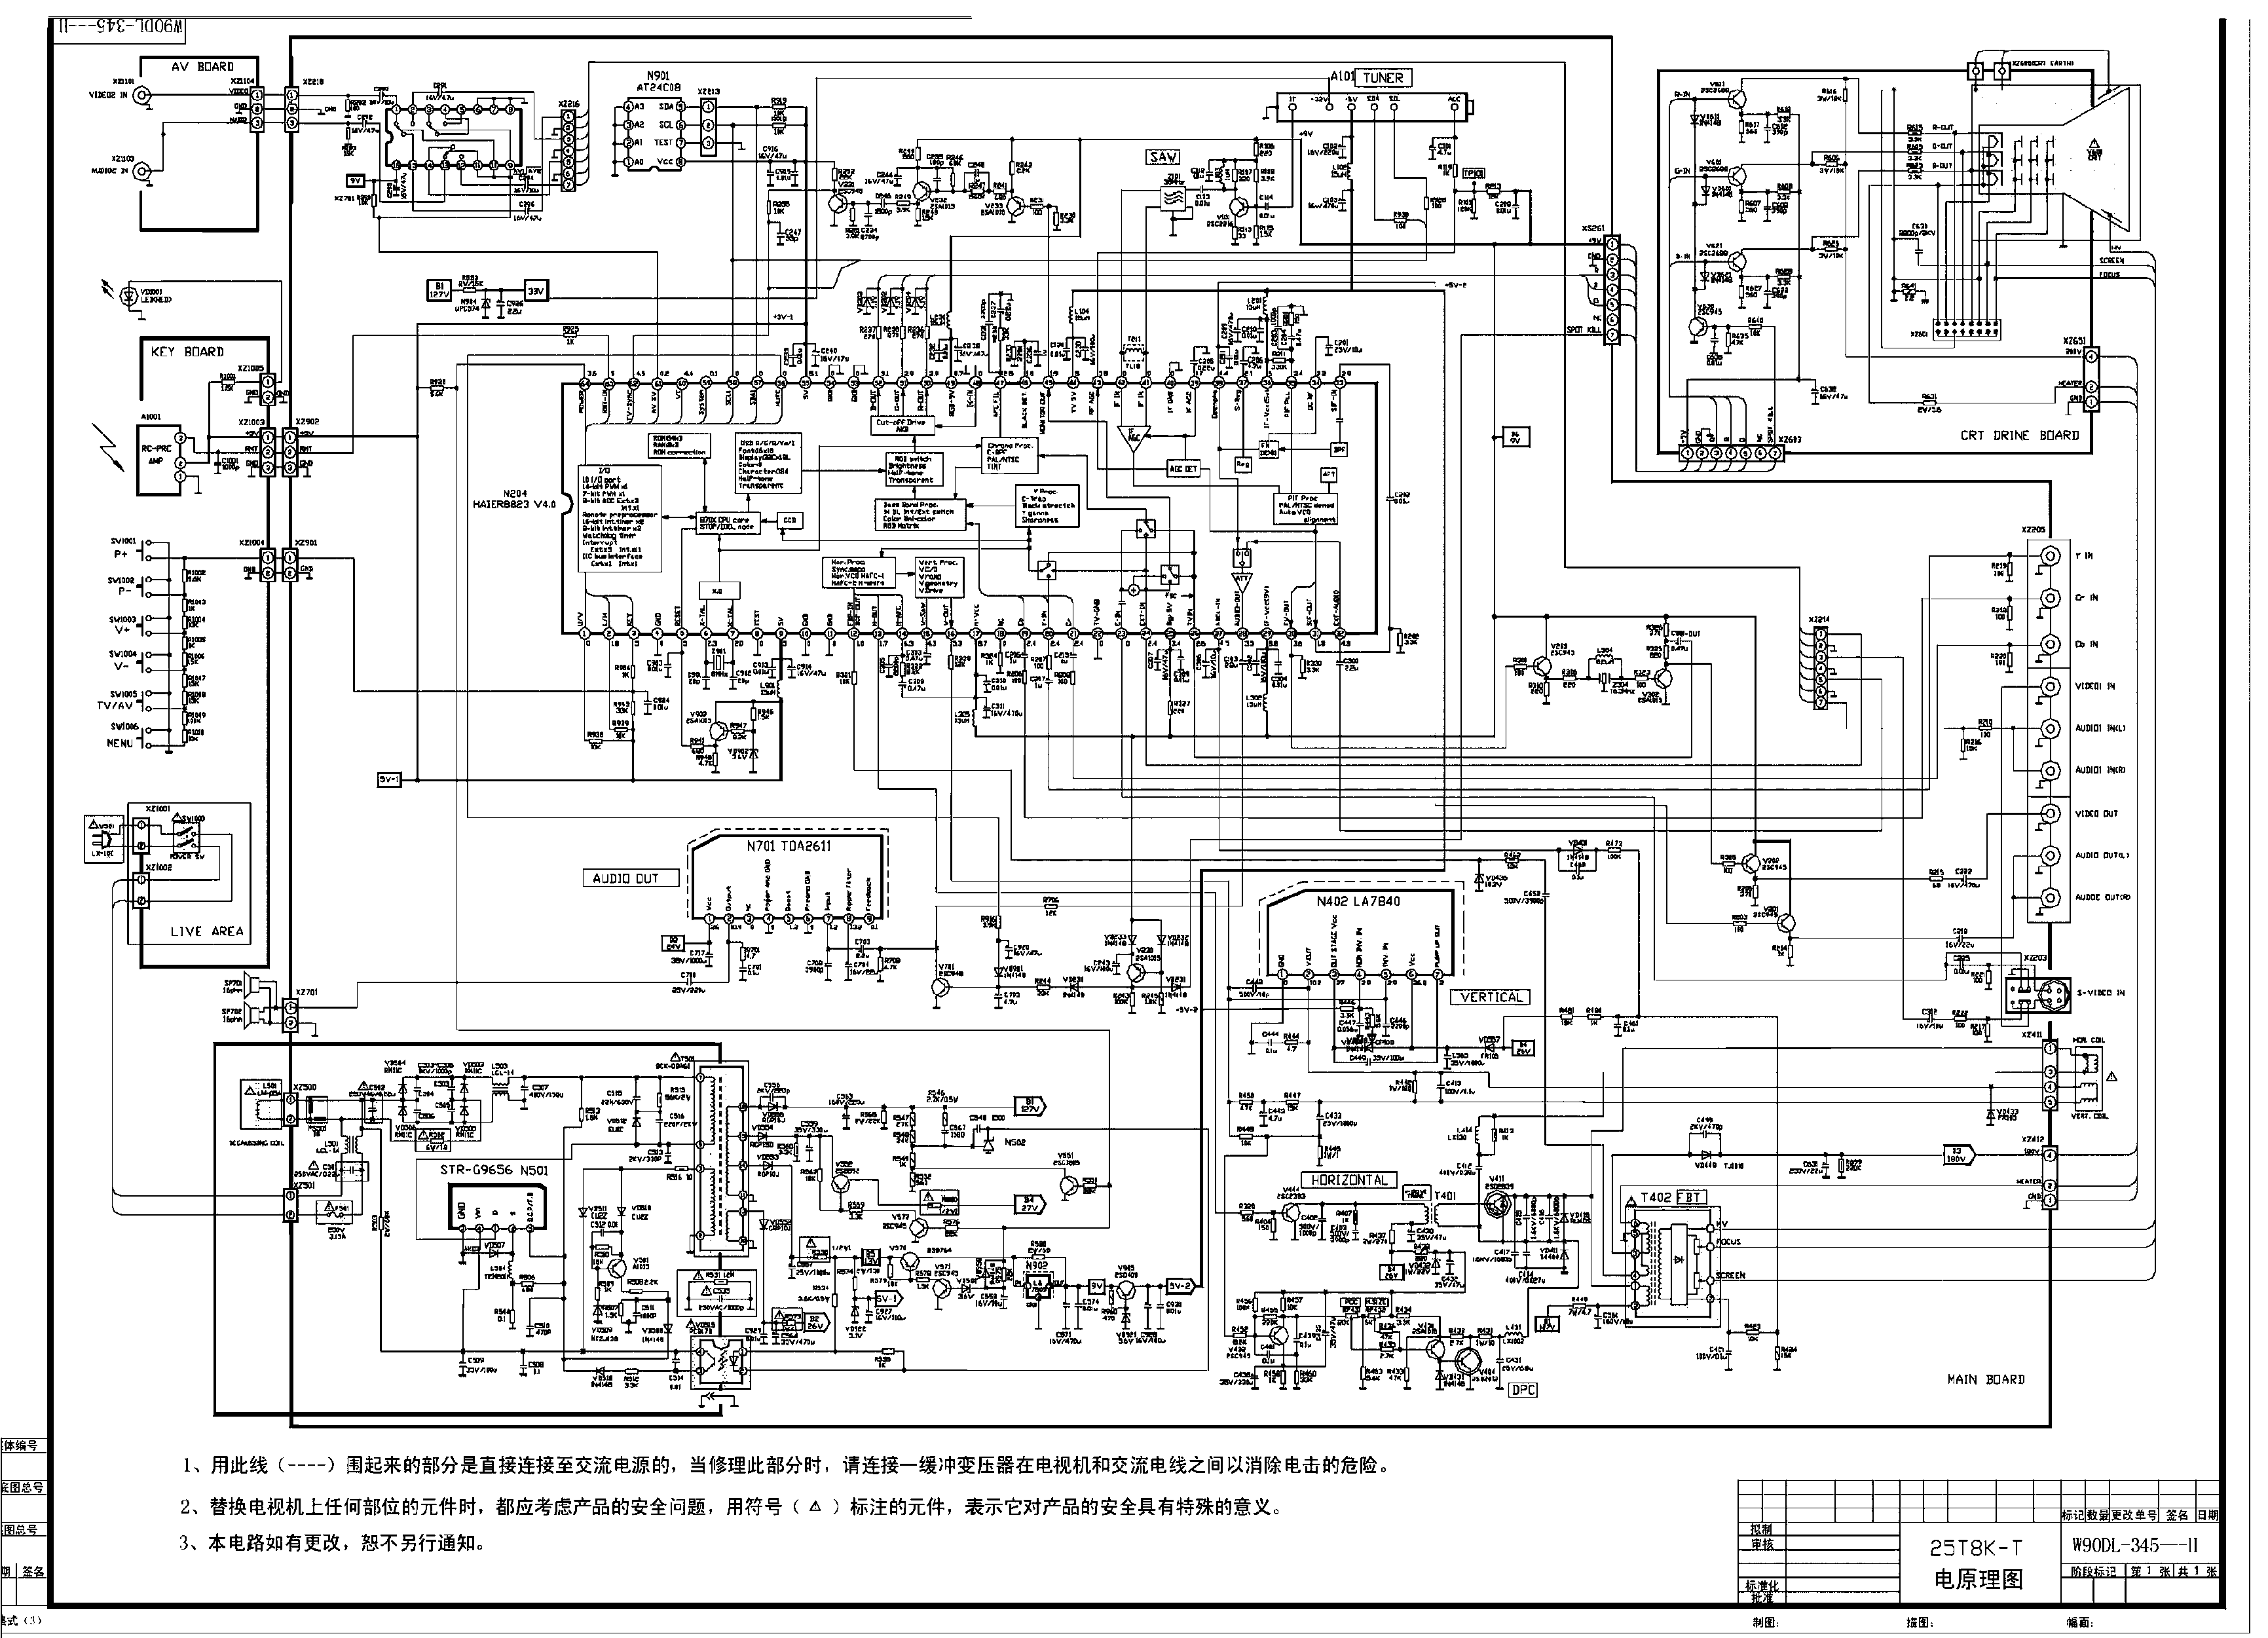 refrigerator compressor relay wiring diagrams